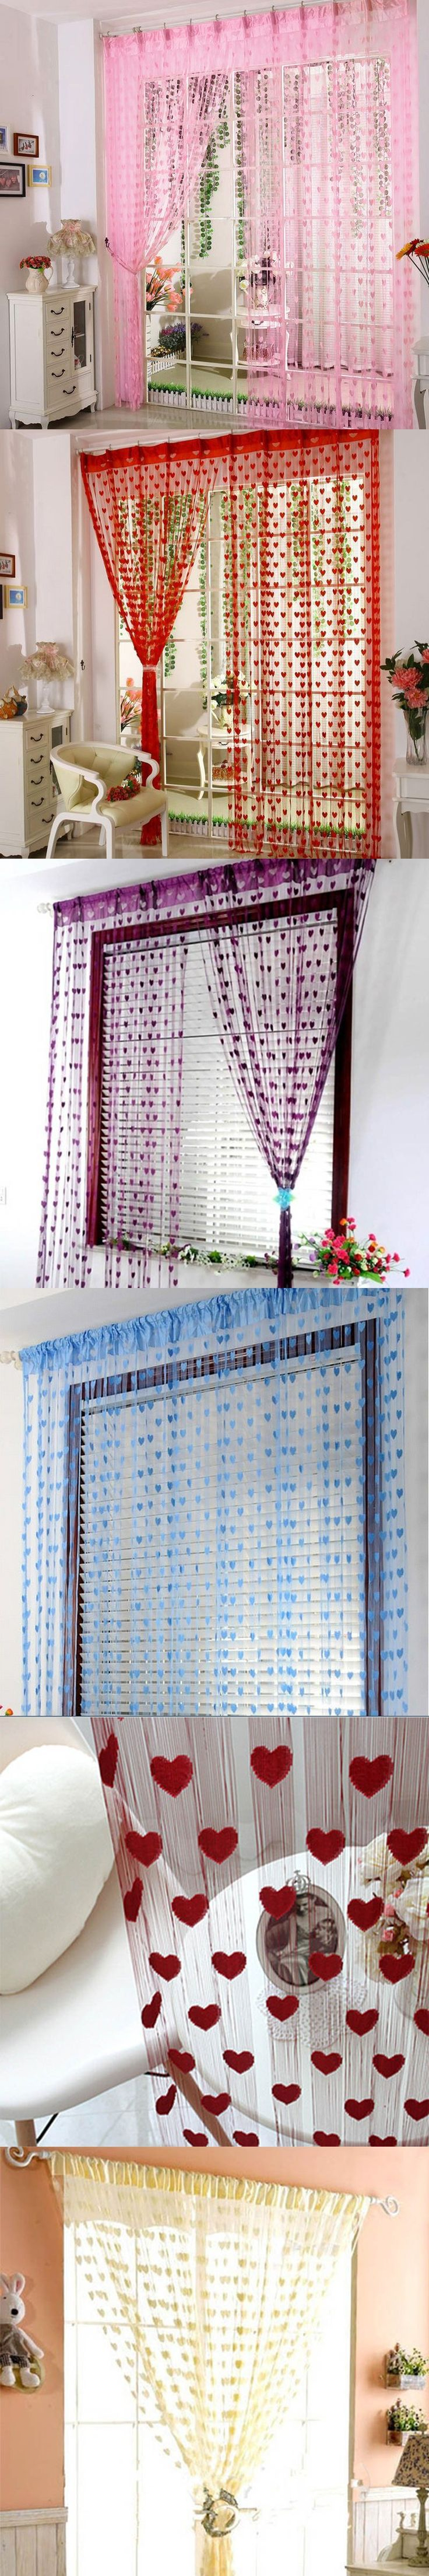 String curtain ideas - New Heart String Curtain Window Door Balcony Home Decoration Children Decorative Curtain For Living Room Bedroom Kitchen